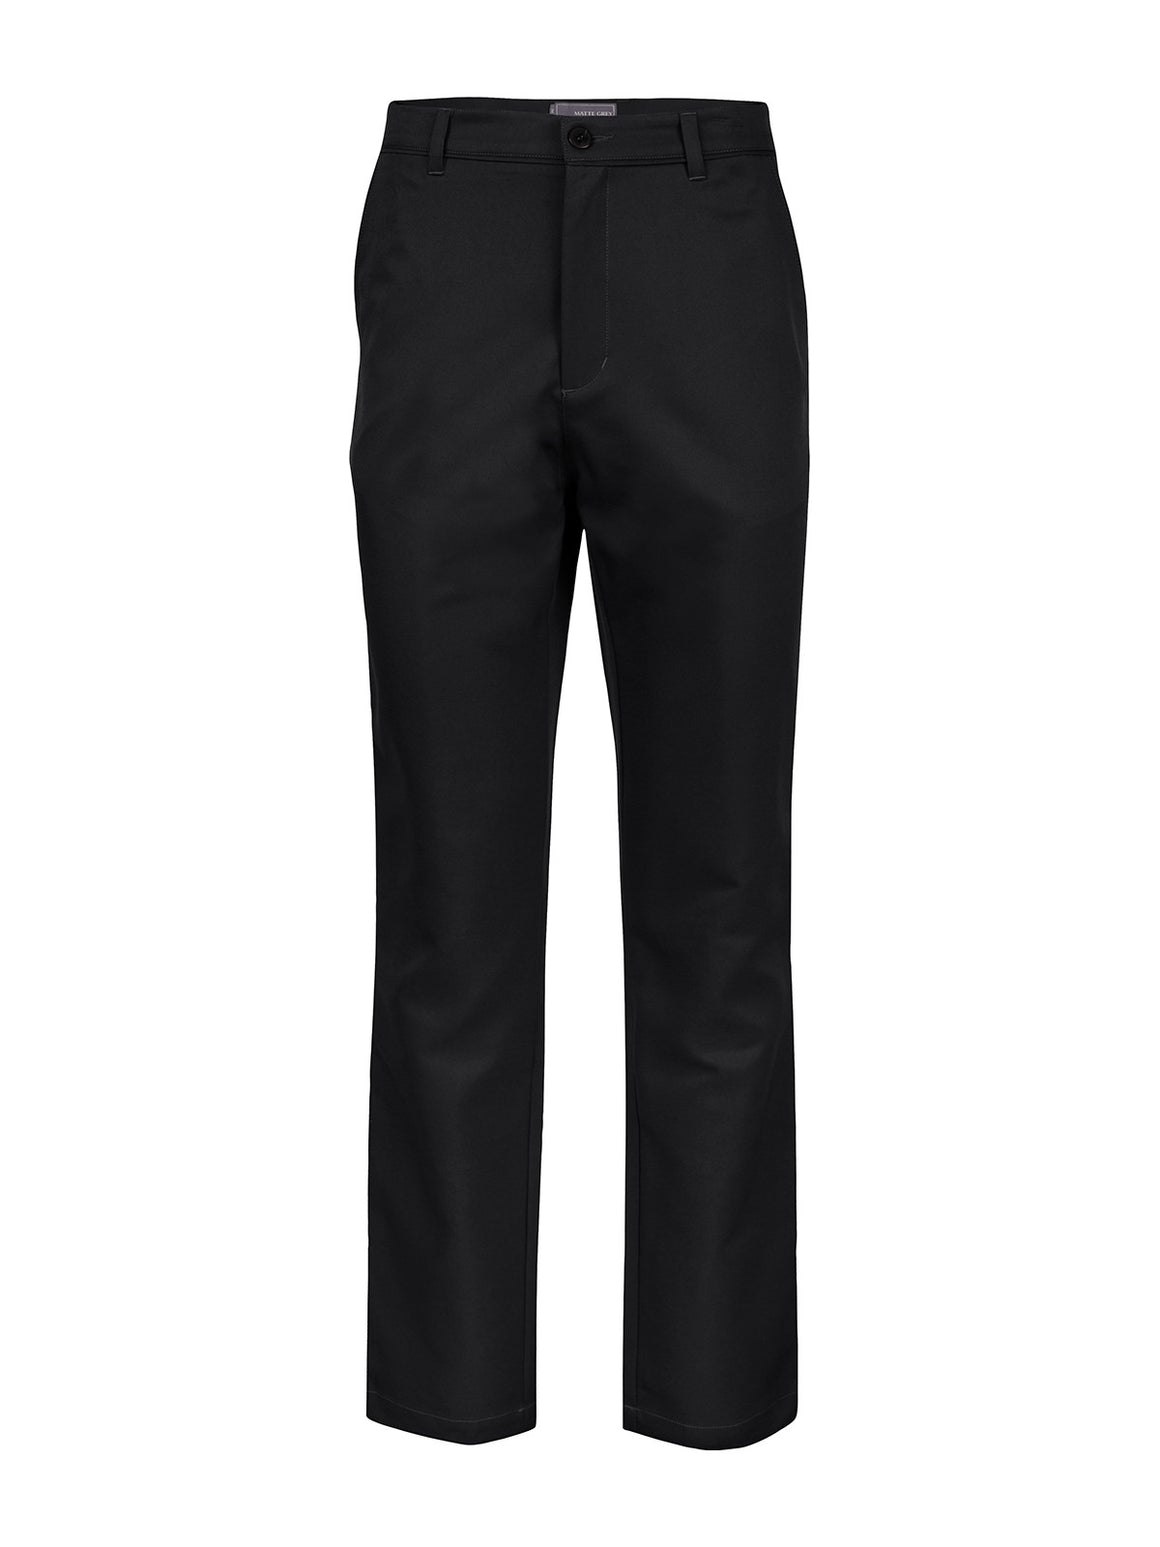 Wayfarer FIT101 Pant - Black